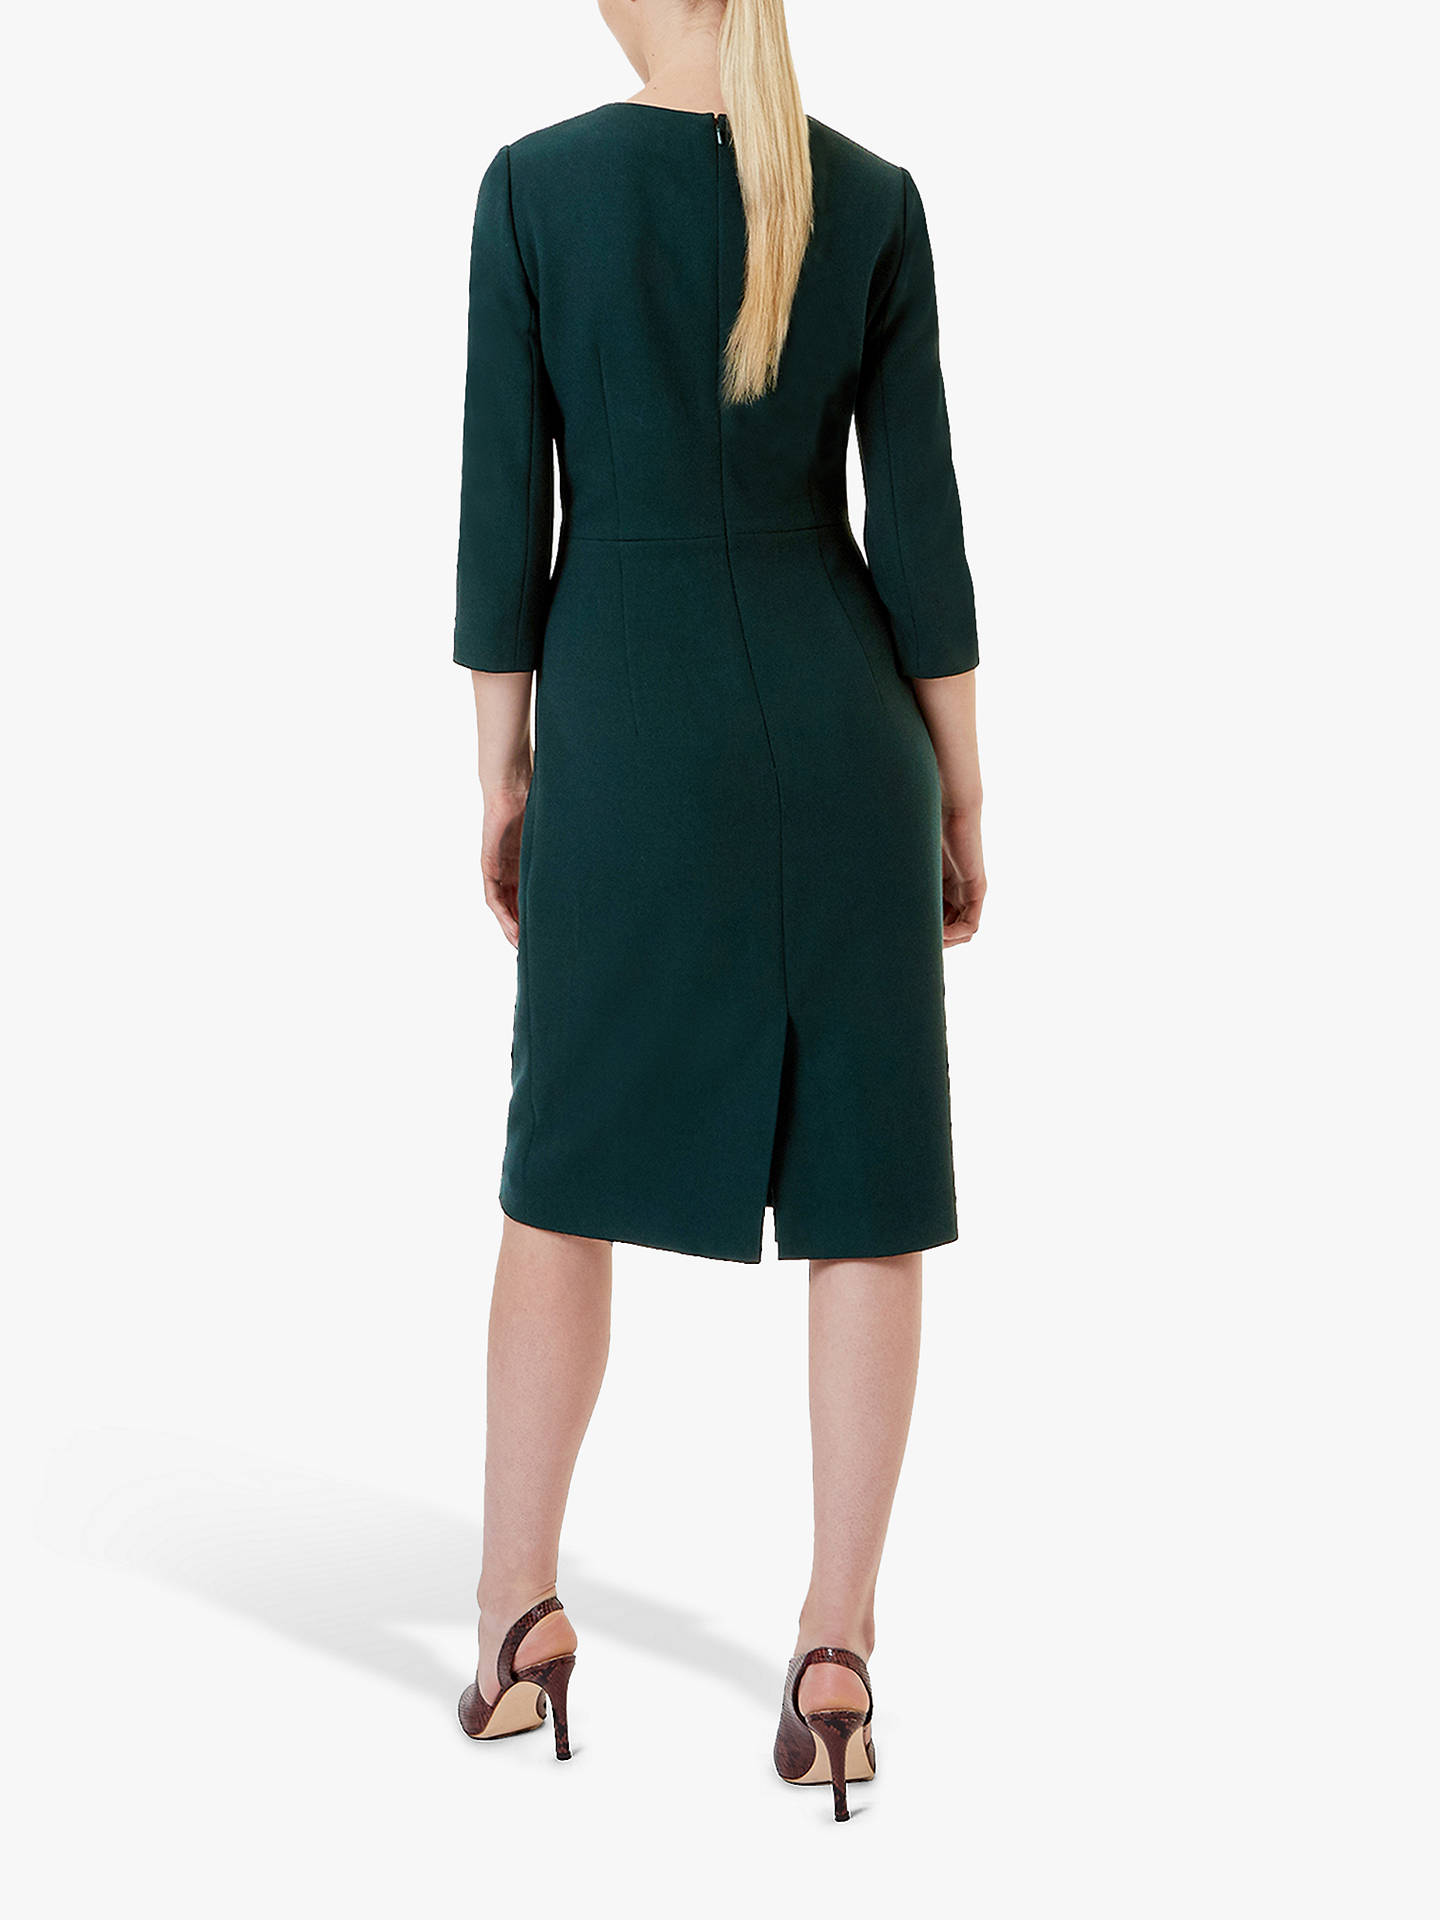 Buy Hobbs Tailored Viviene Dress, Forest Green, 6 Online at johnlewis.com